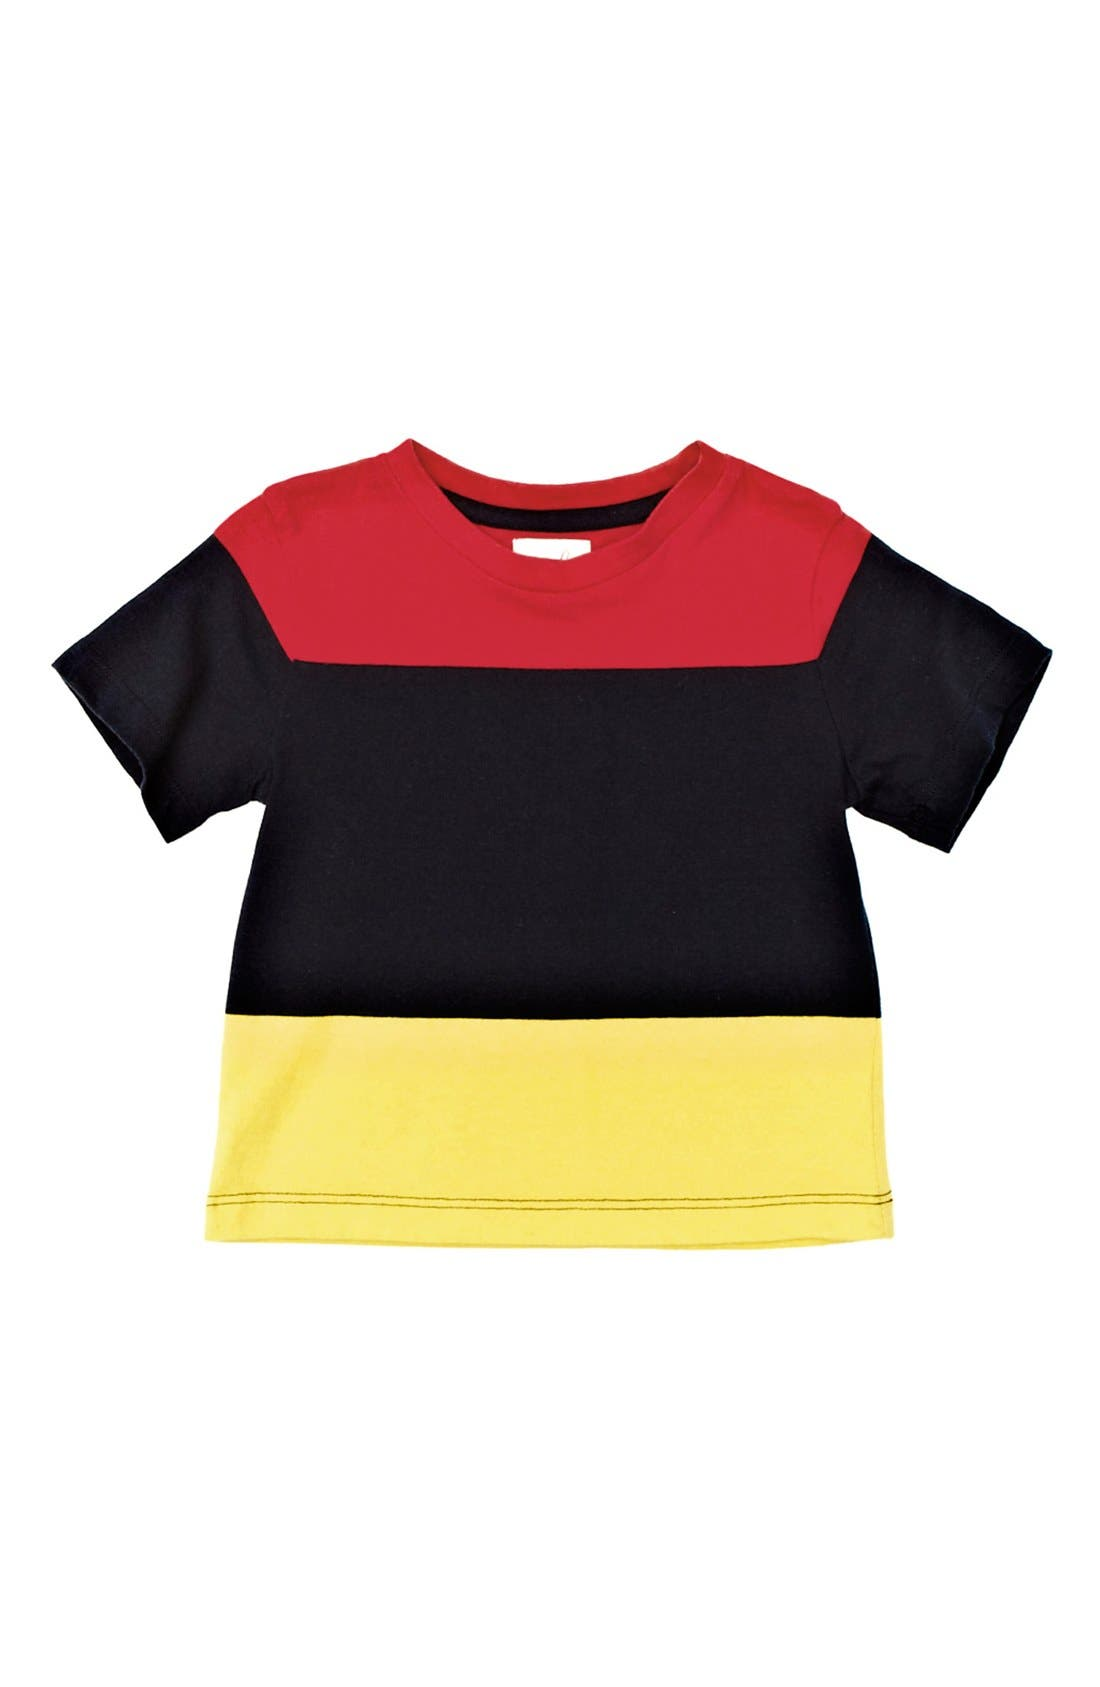 Main Image - Peek Colorblock T-Shirt (Baby Boys)